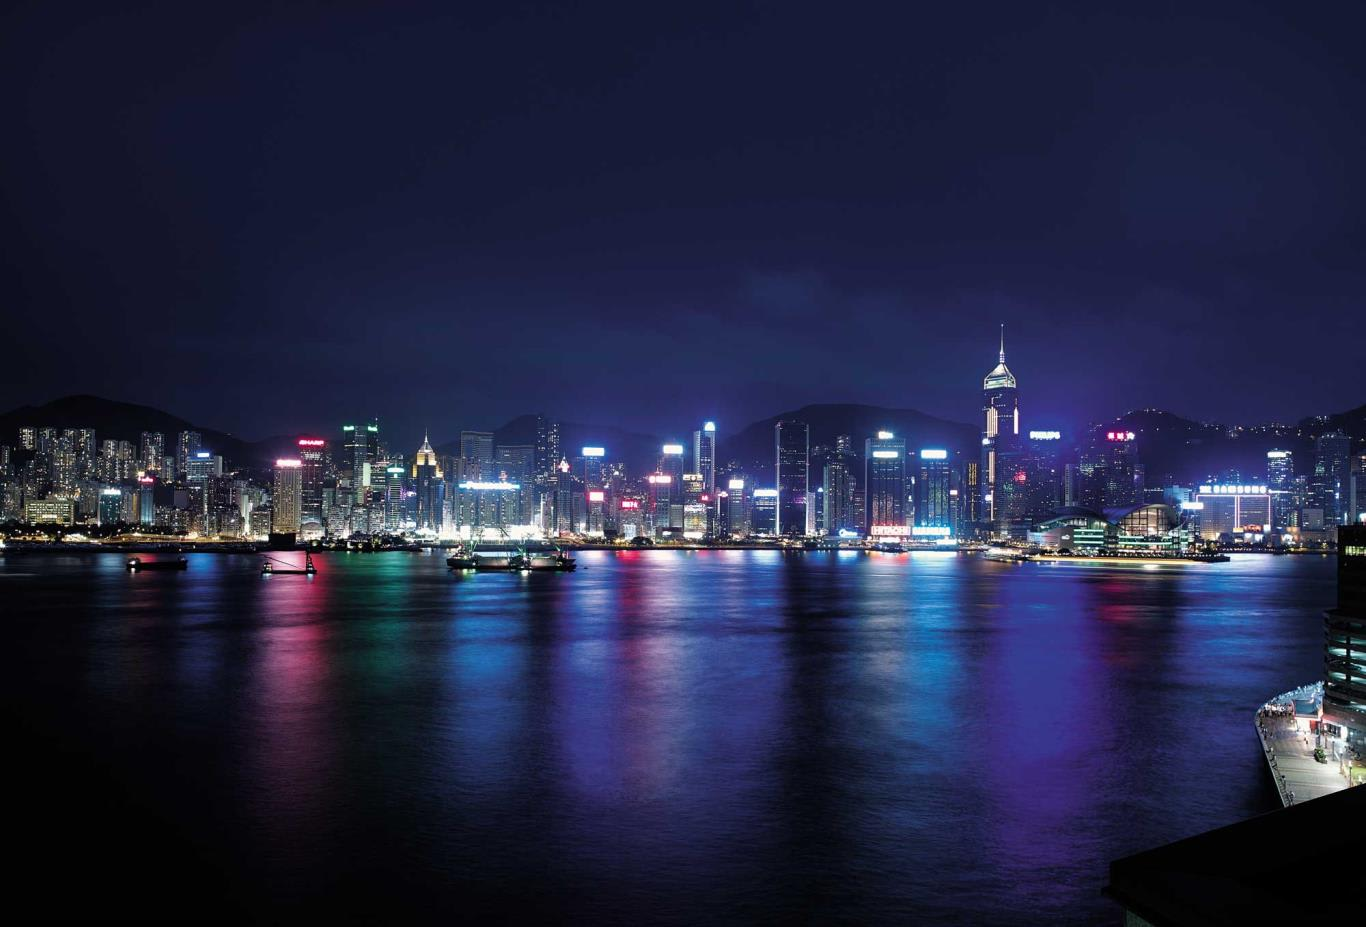 Harbour View Night